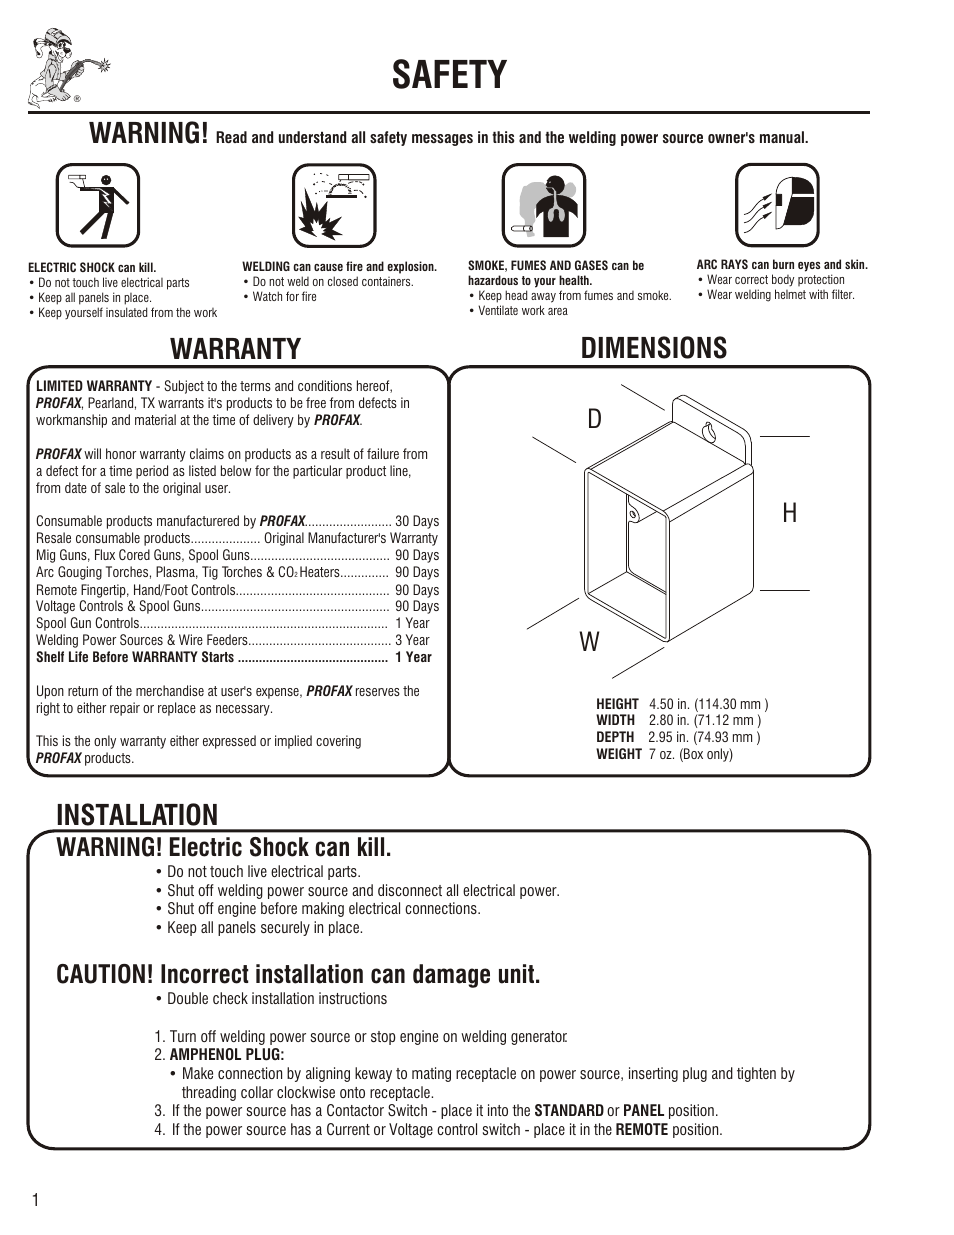 Safety Maintenance Warning Profax Mhc 14 User Manual Page 2 4 Miller 300 Wiring Diagram